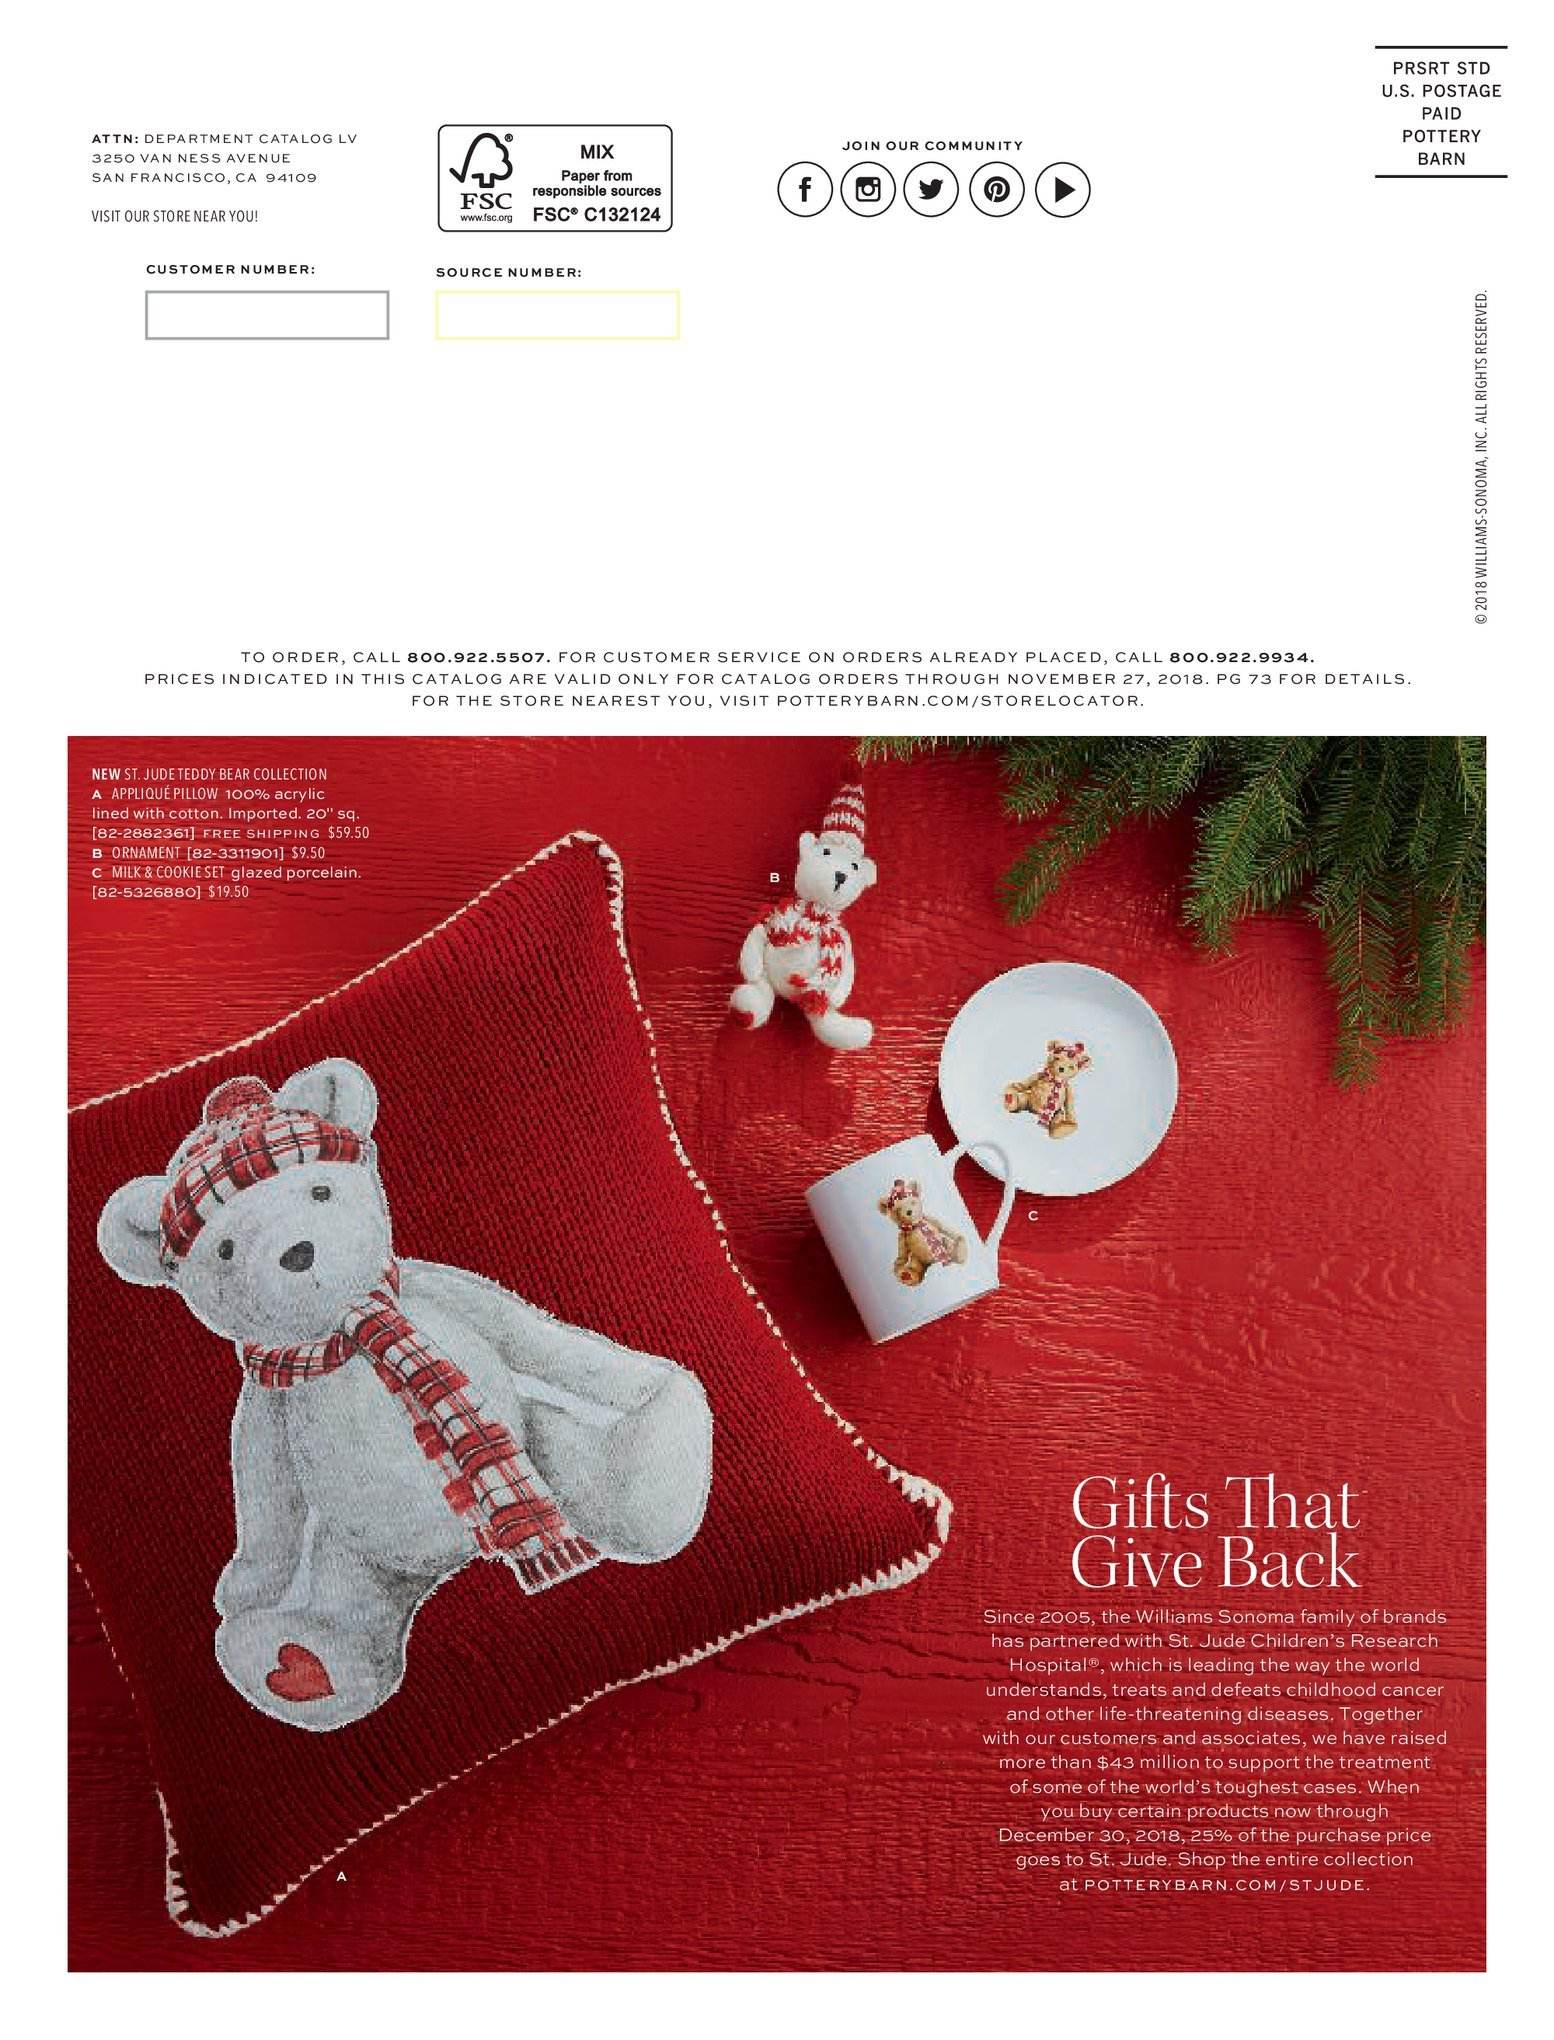 Pottery Barn catalogue and weekly specials 19 11 2018